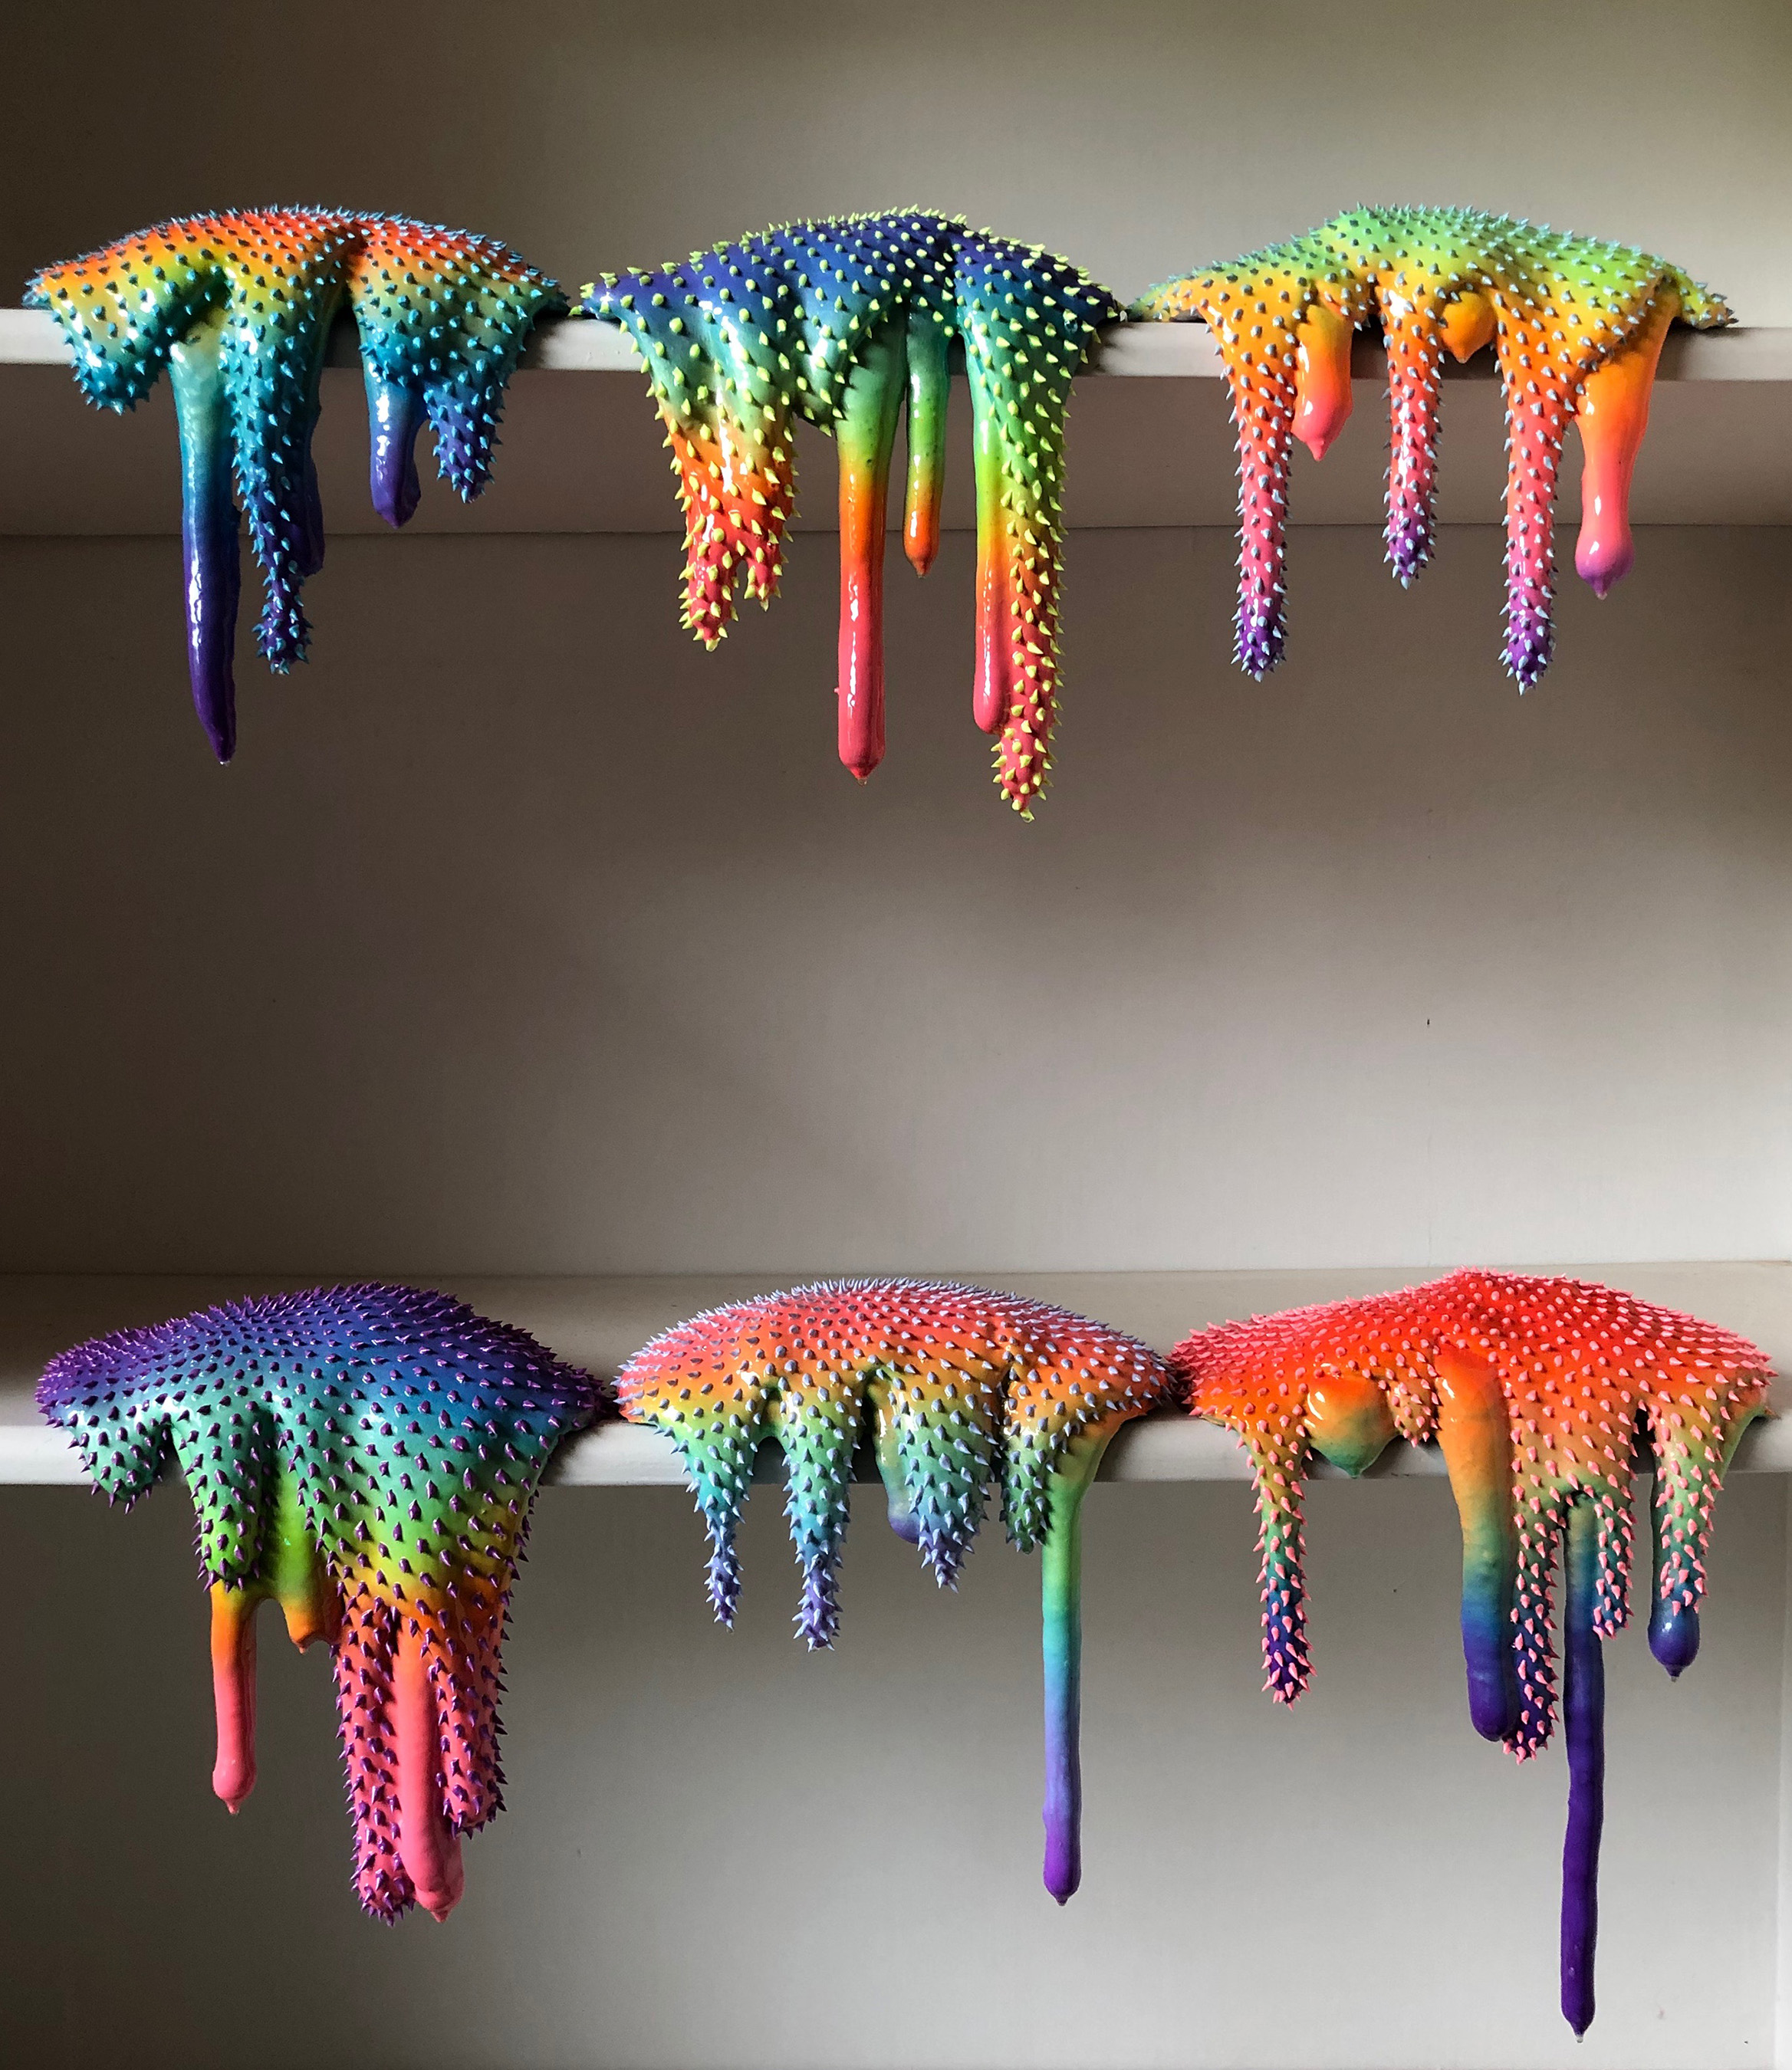 A preview of artist Dan Lam's work, inspired by Boston-born brand, Steve's Ice Cream.